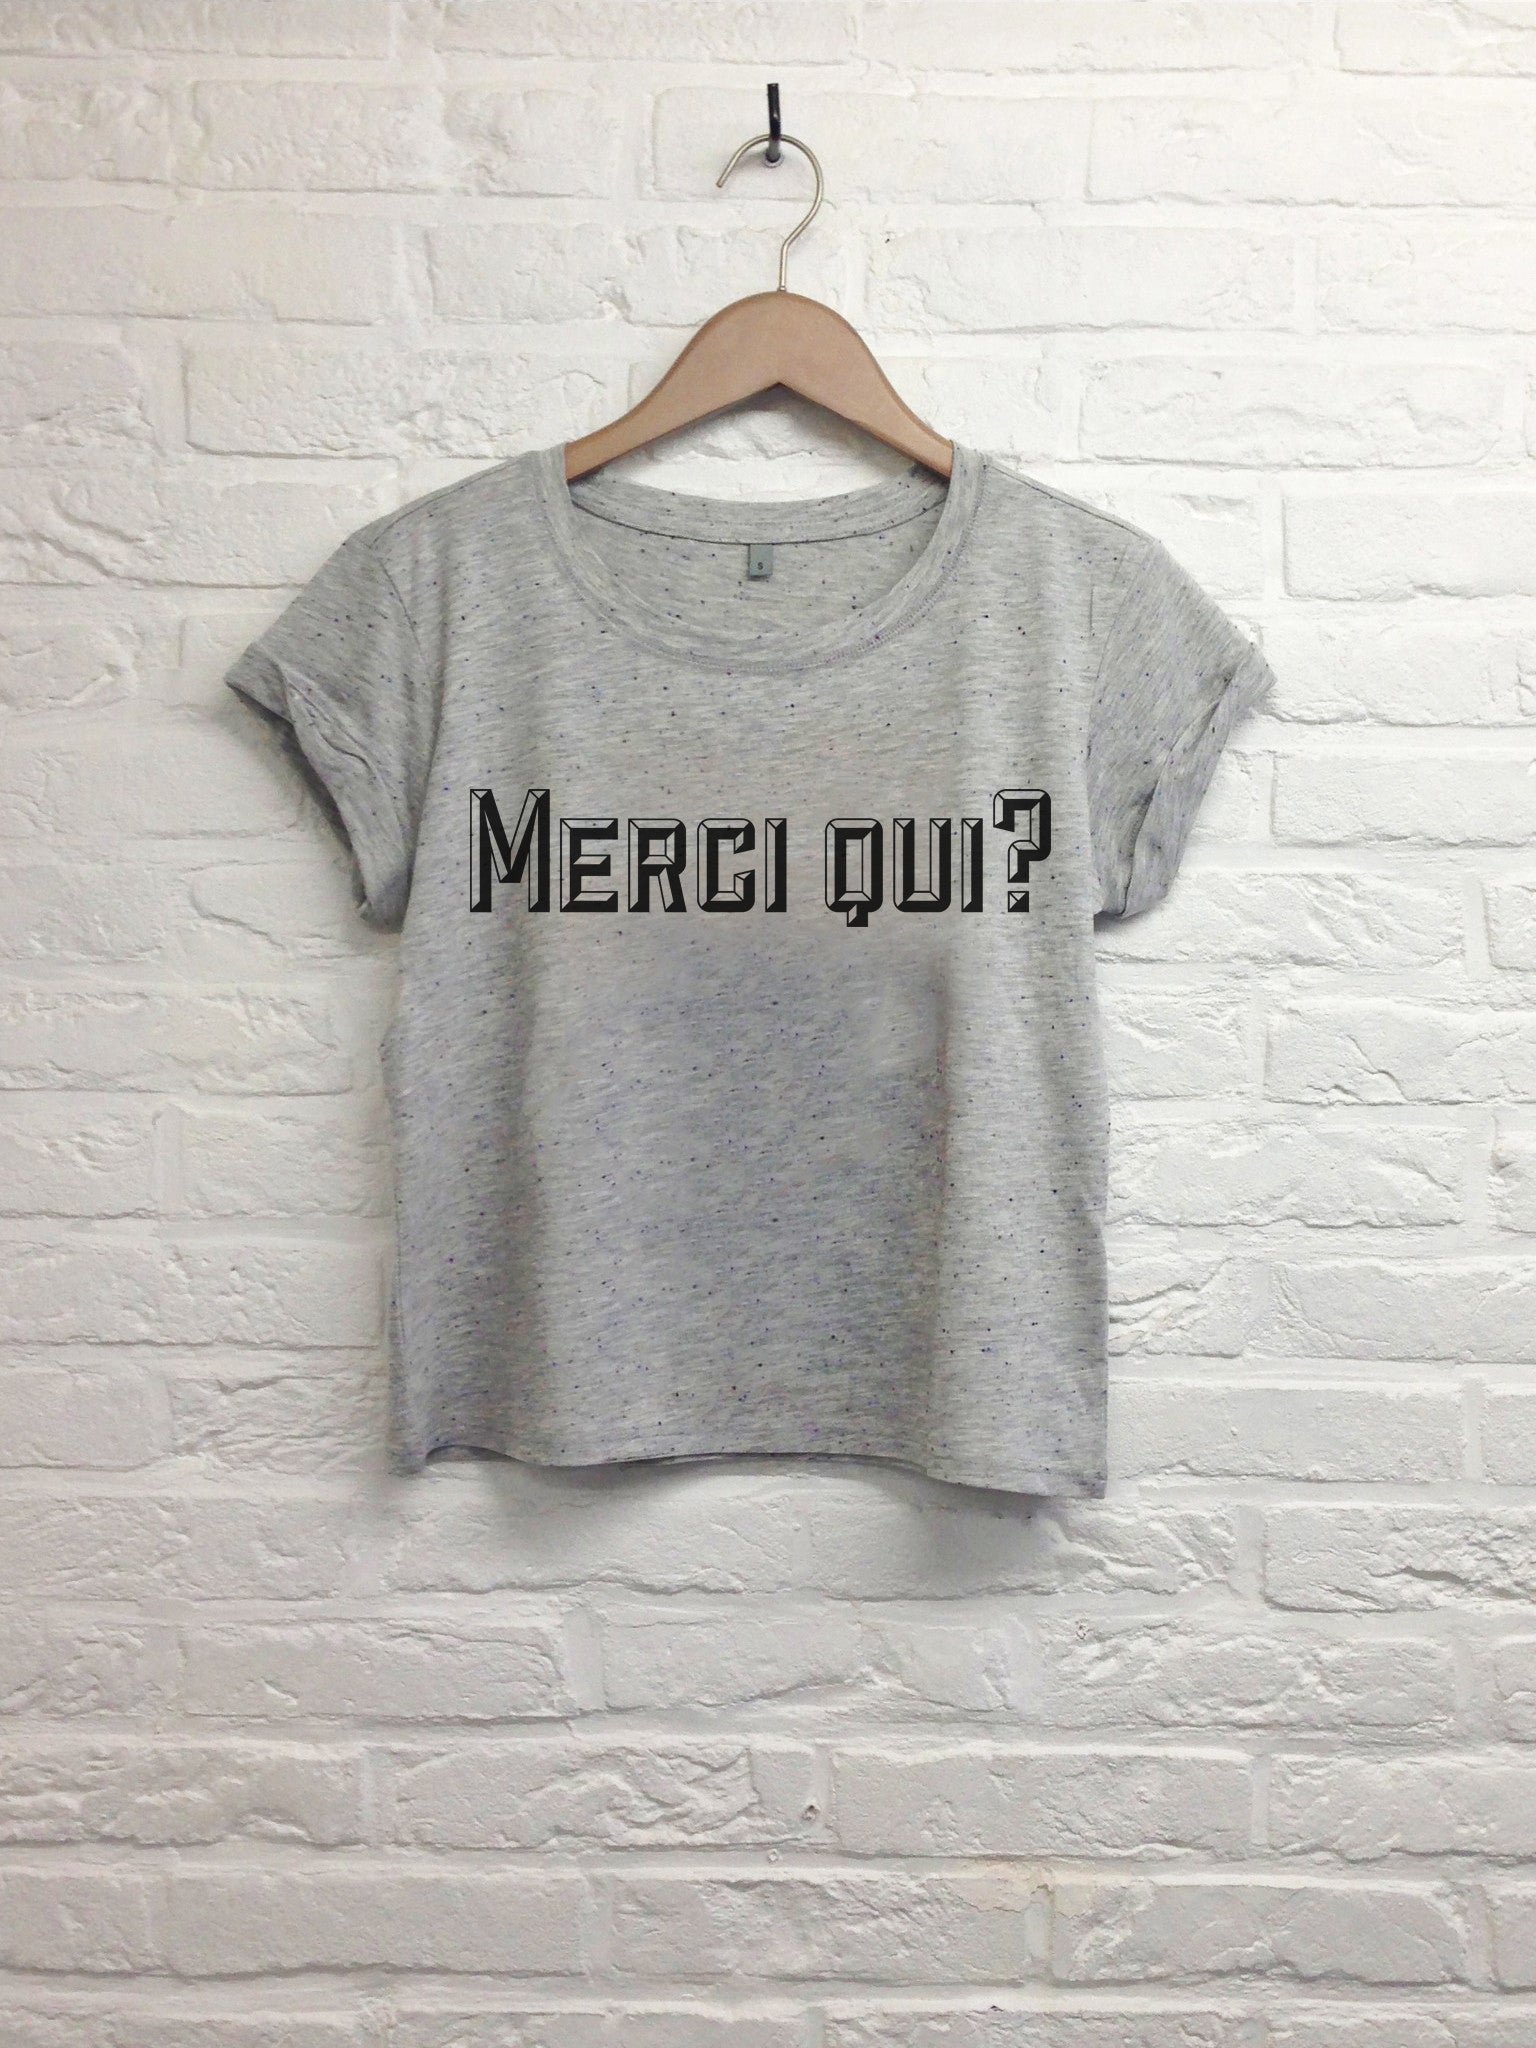 Merci qui - Crop top speckled grey-T shirt-Atelier Amelot